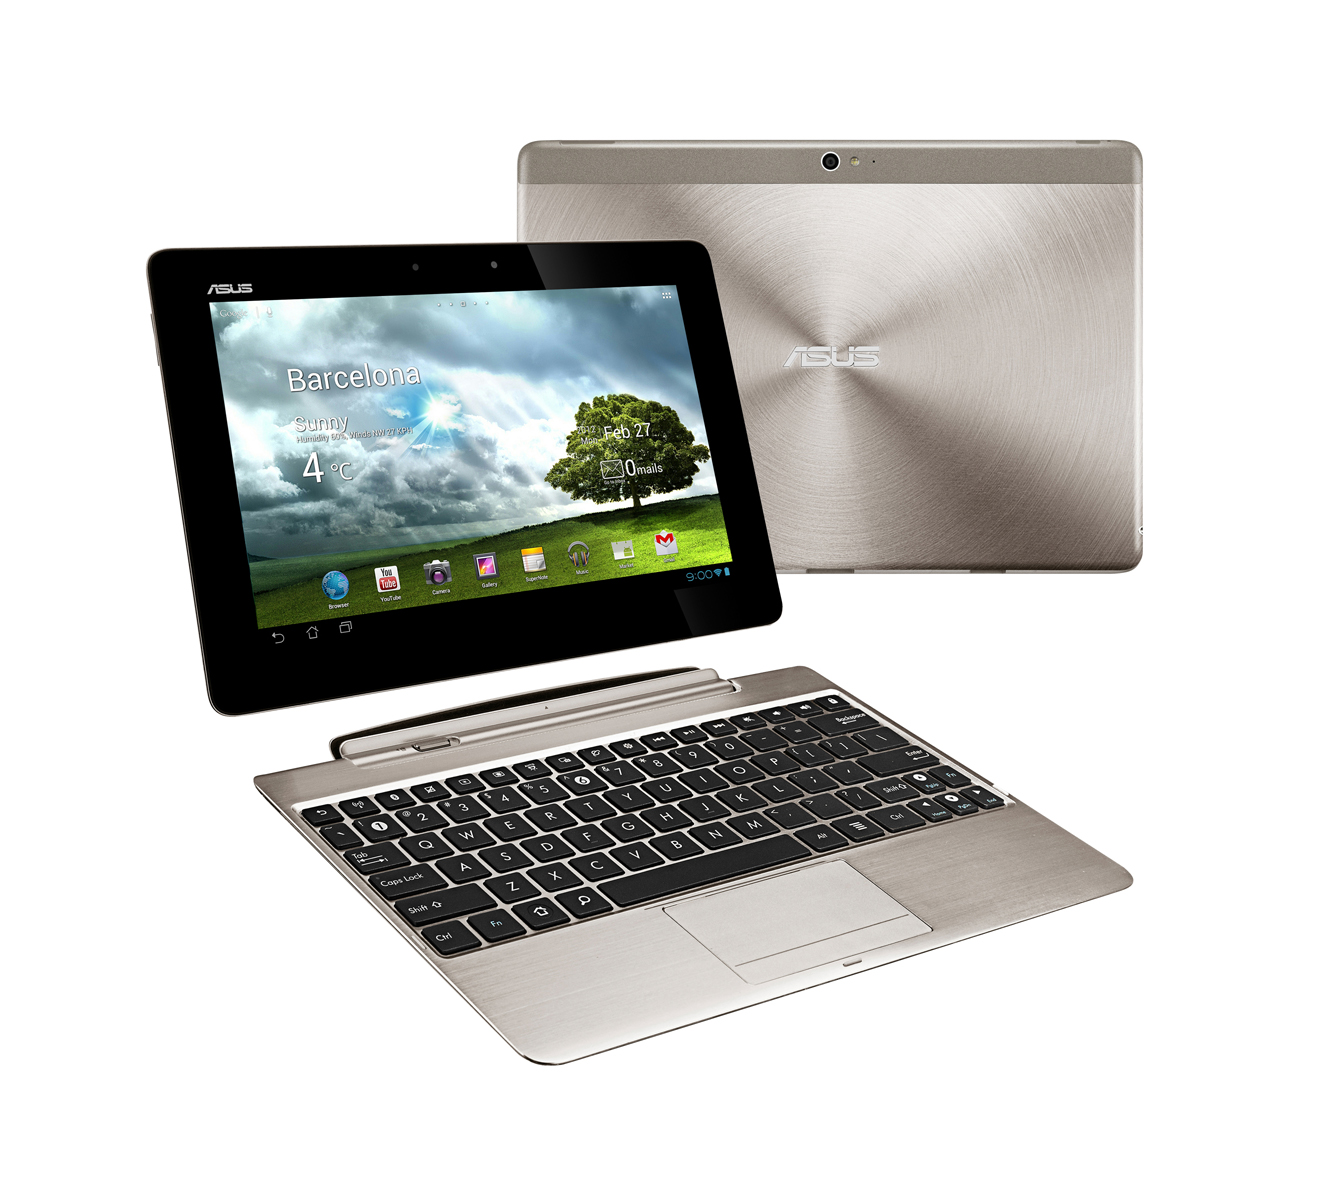 Autistic Children feel comfortable interacting Socially with their Peers through Tablets like Transformer Pad Infinity